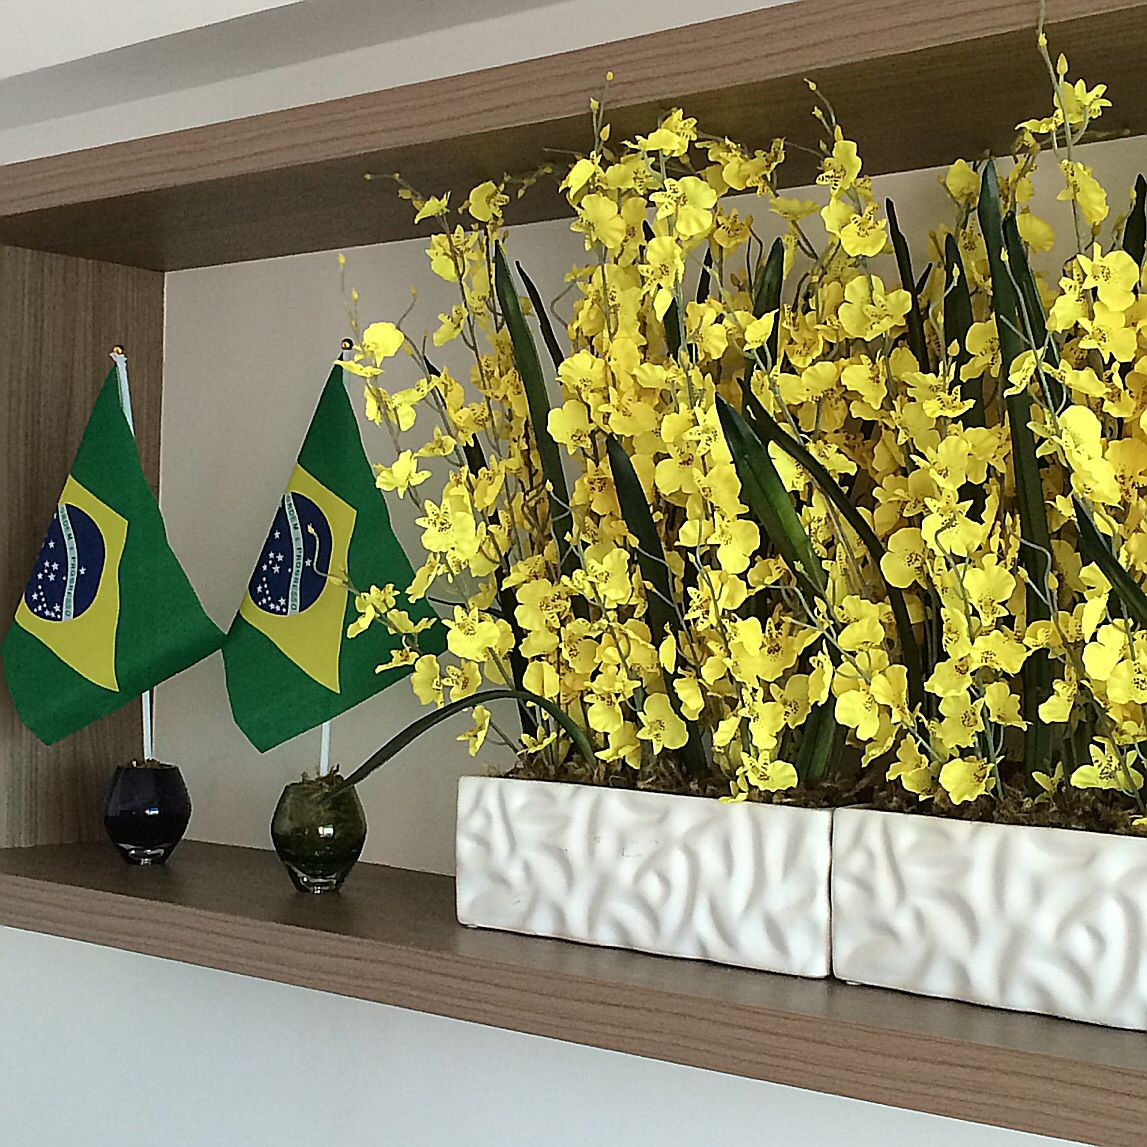 #brazil #flowers #yellow #green #orchids #flag #decor #worldcup